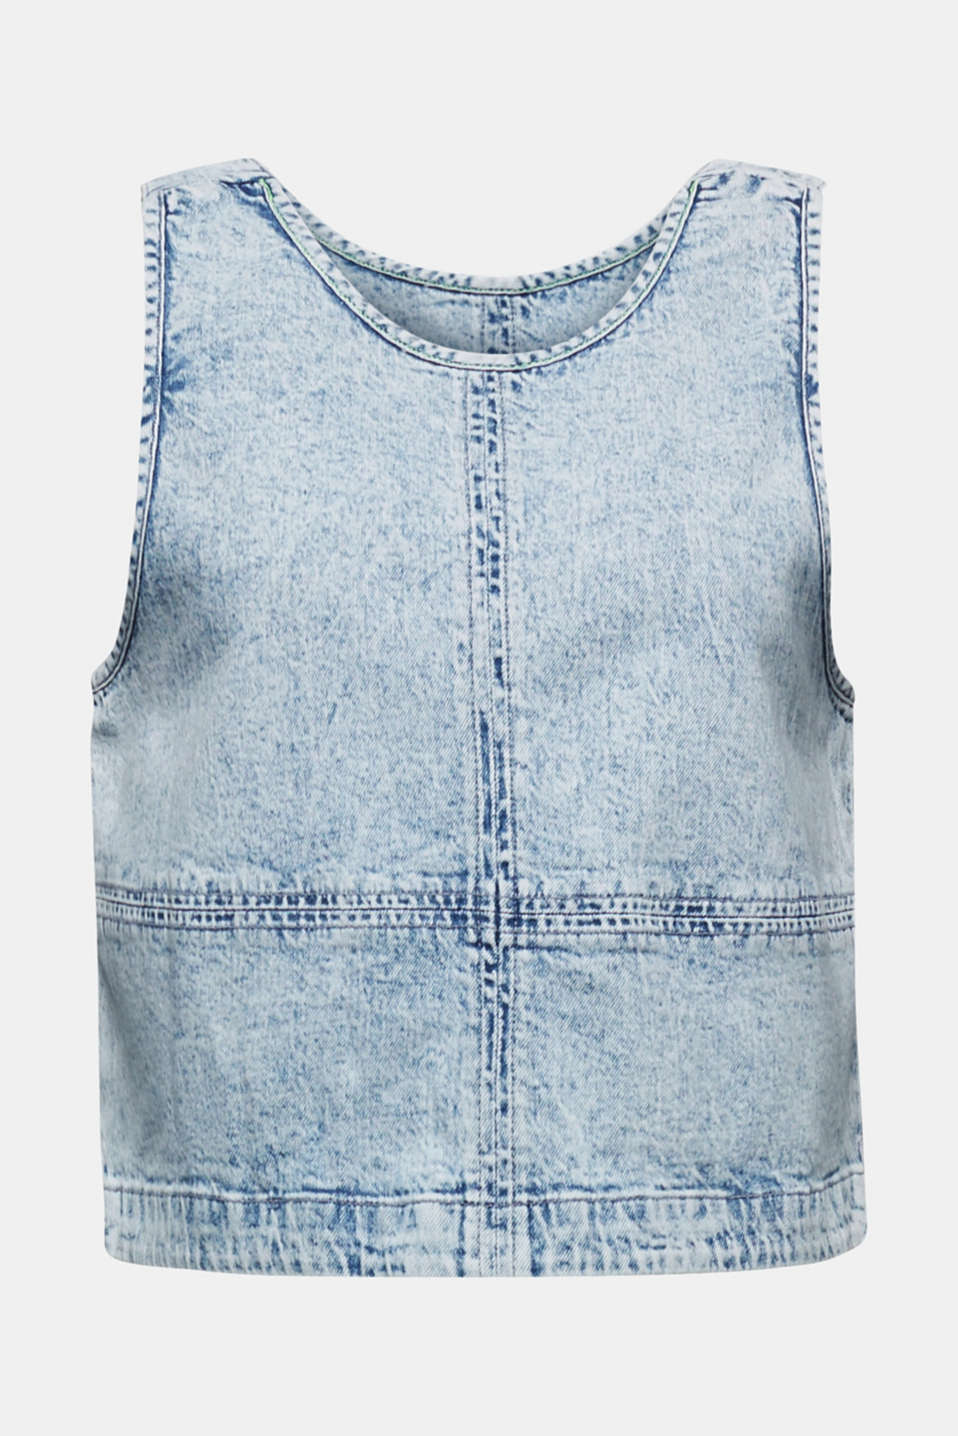 Cropped blouse top made of denim, BLUE BLEACHED, detail image number 5